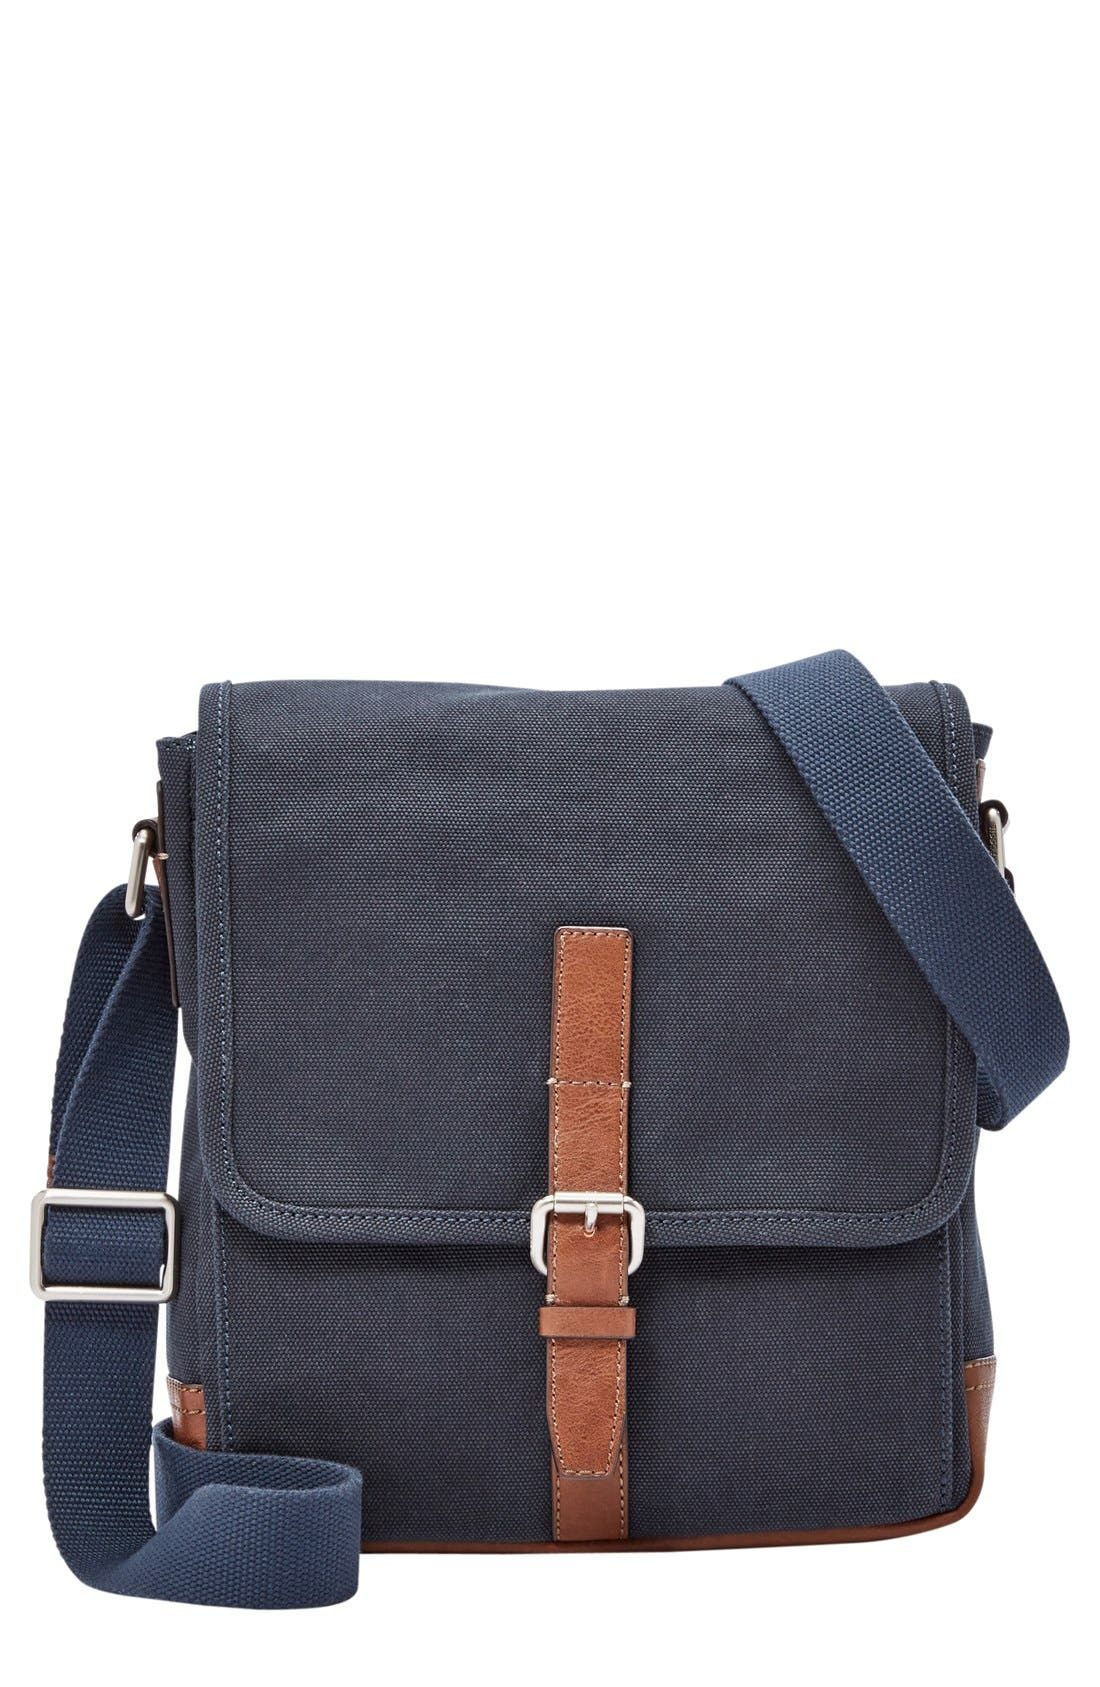 Fossil 'Davis' Canvas Messenger Bag